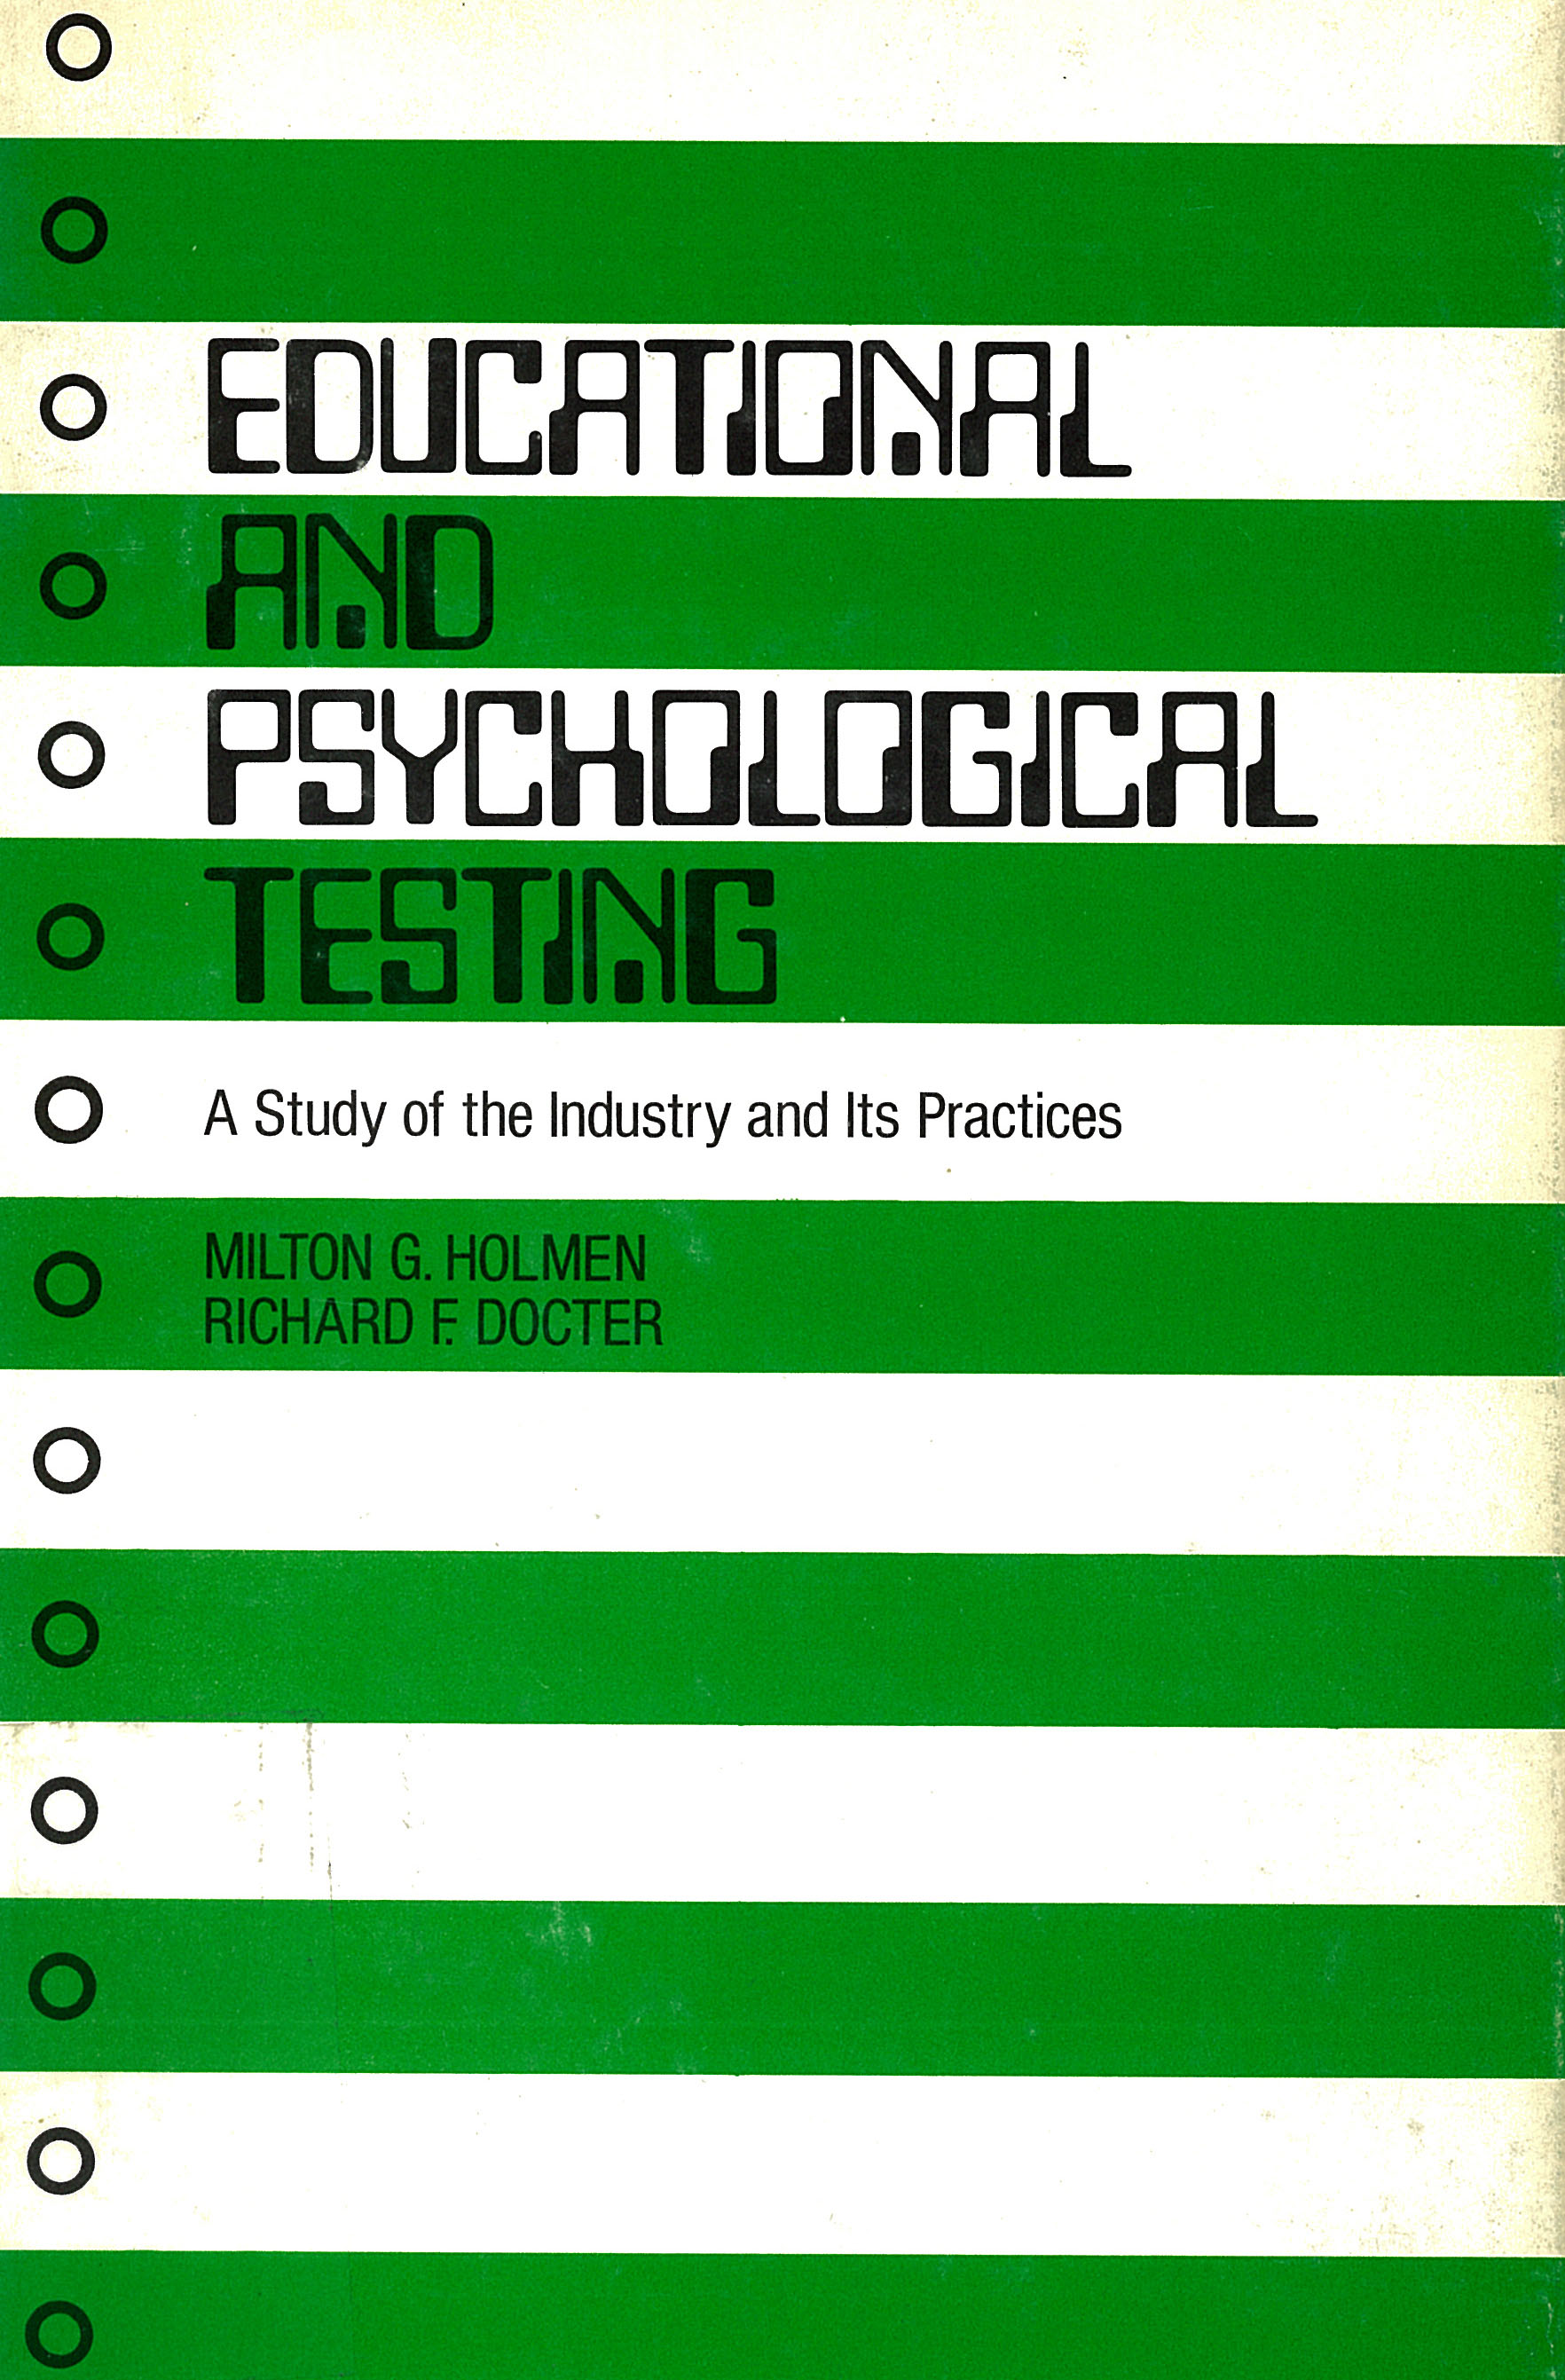 Psychological education: a selection of sites